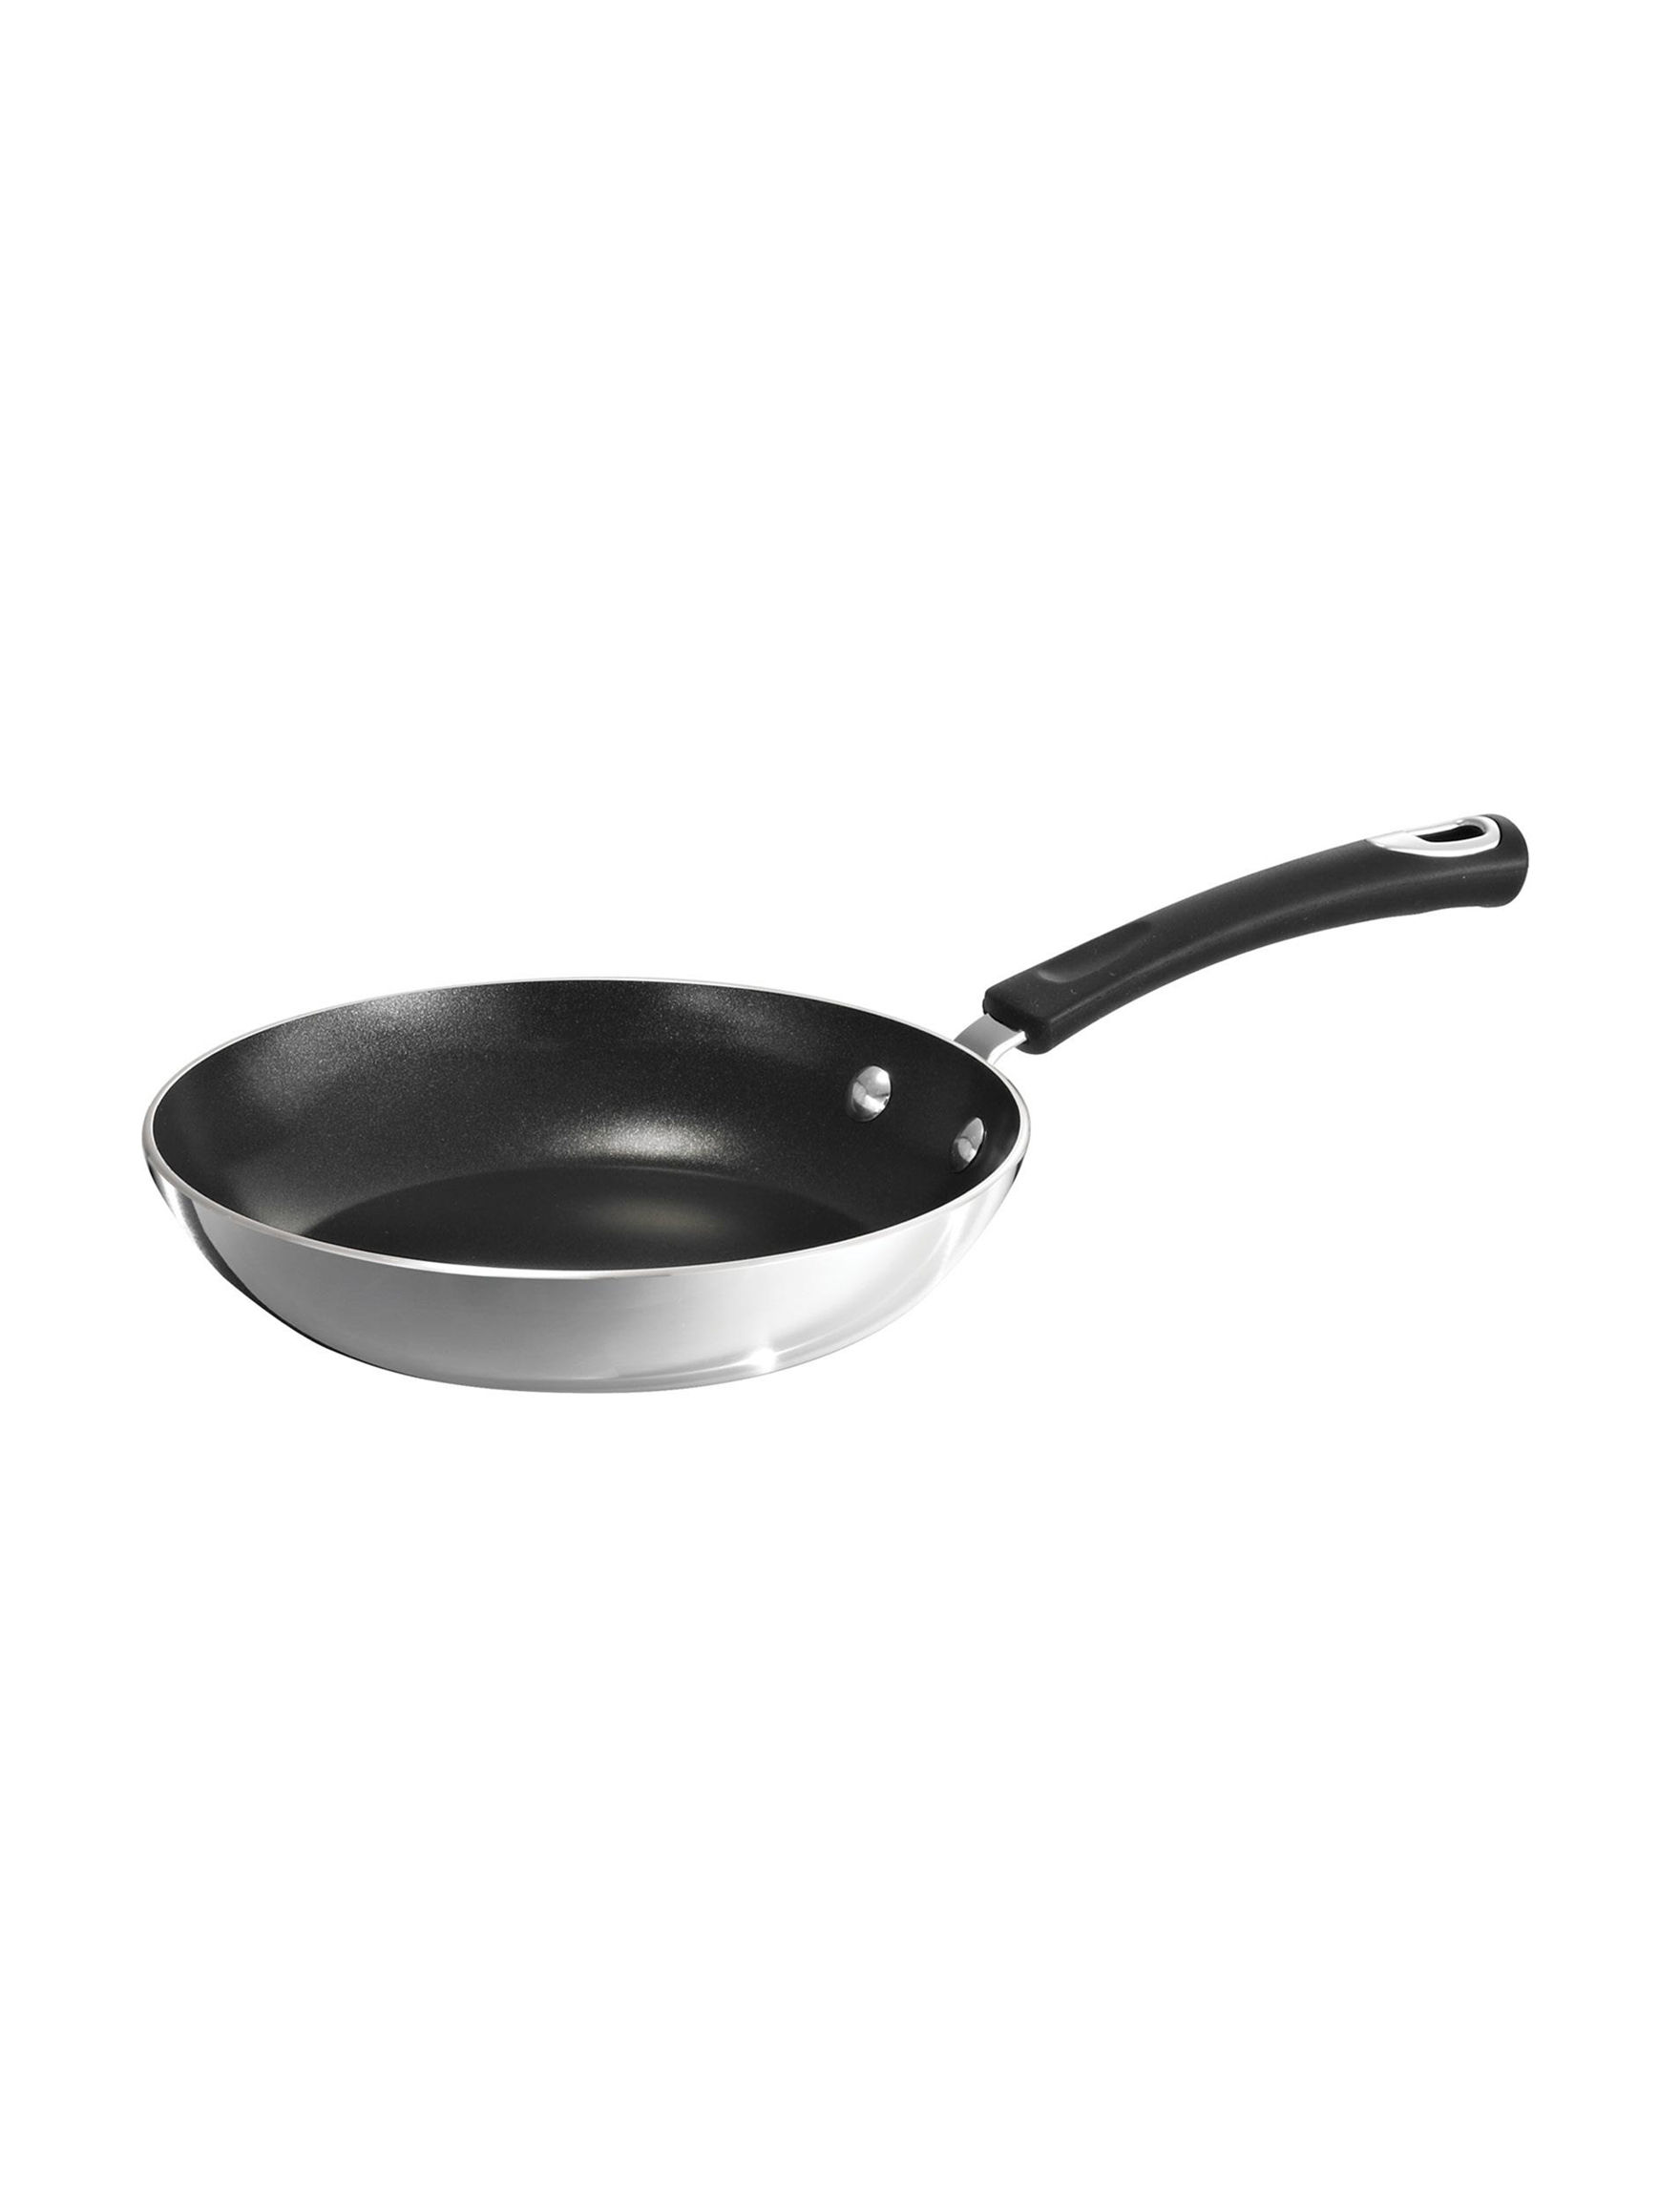 Tramontina Silver Frying Pans & Skillets Cookware